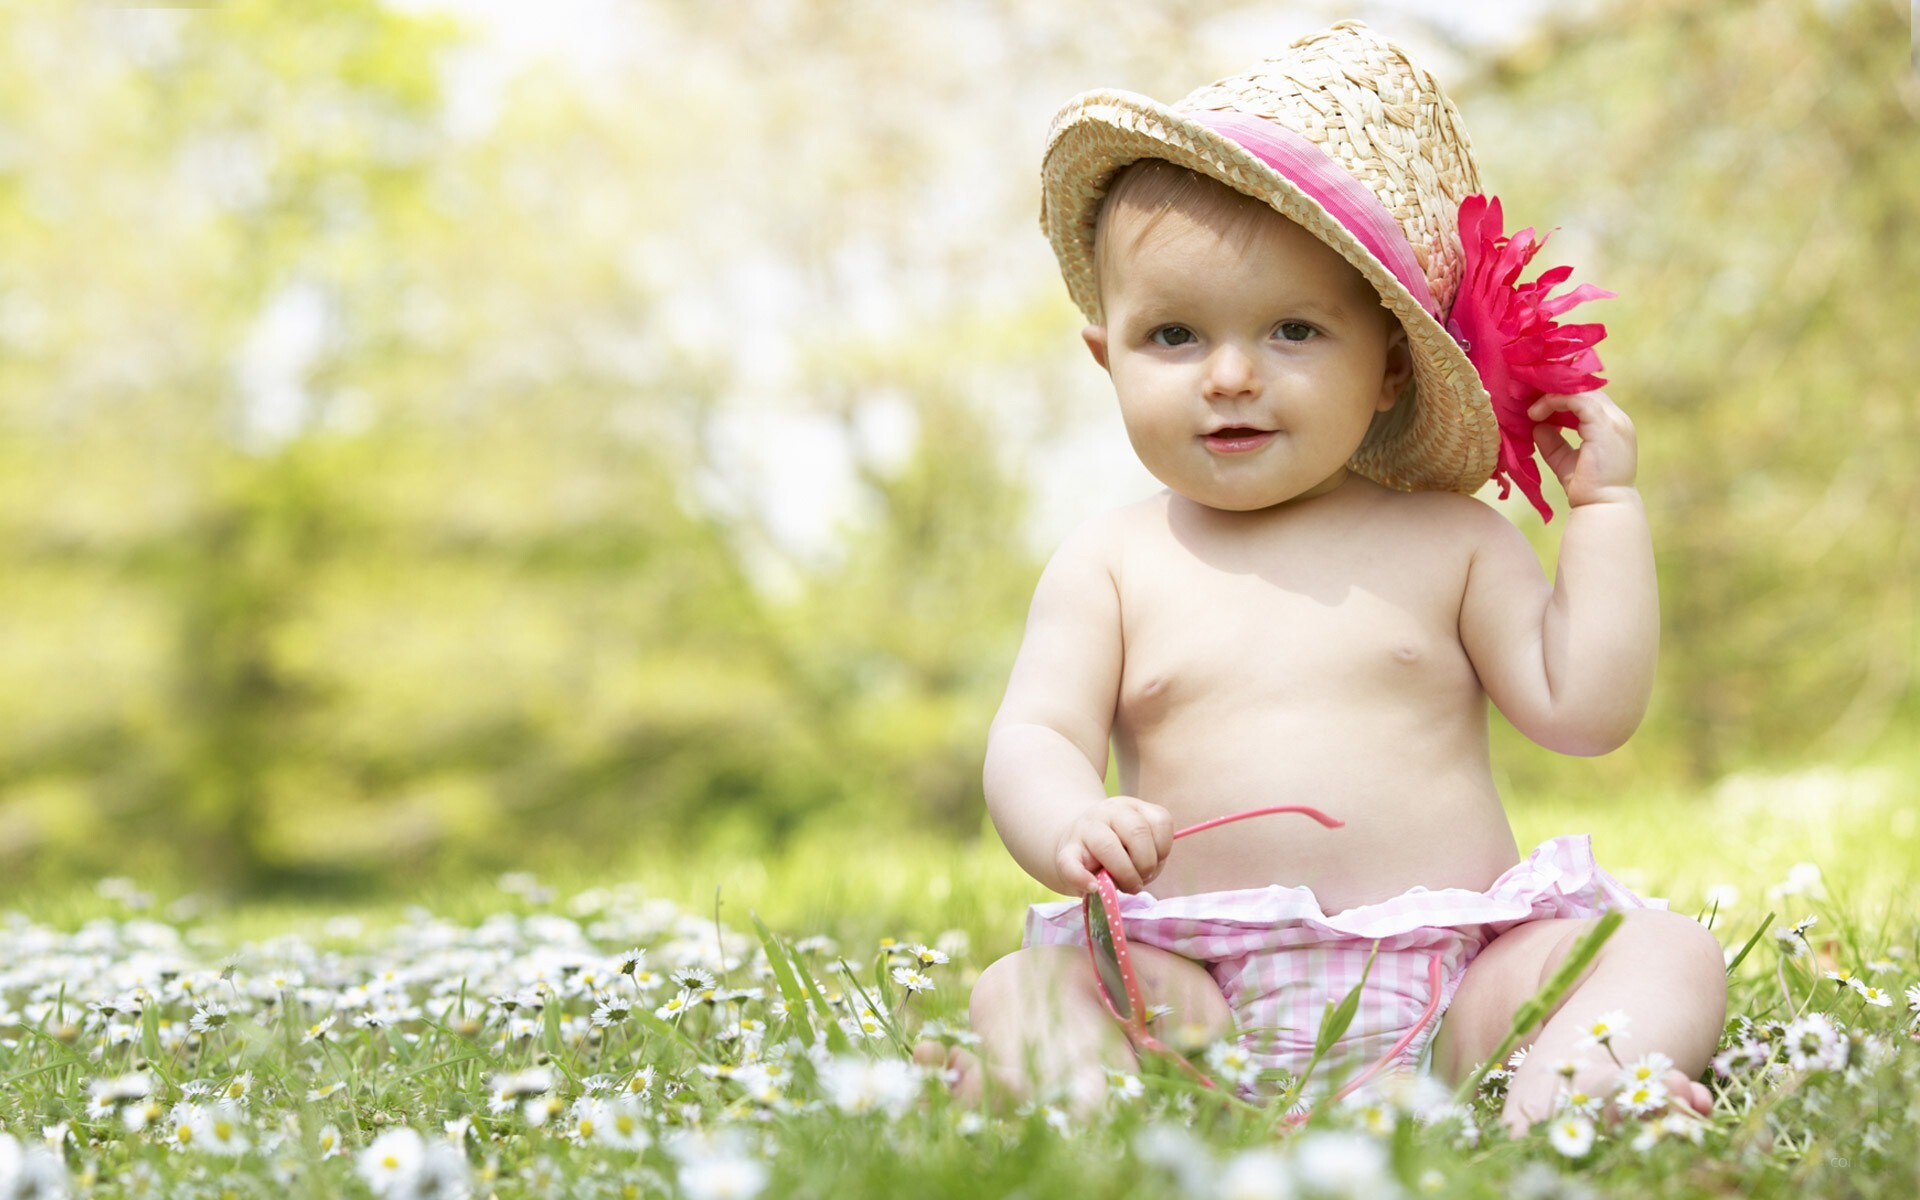 Cute And Lovely Baby Pictures Free Download: Lovable Cute Boy In Garden